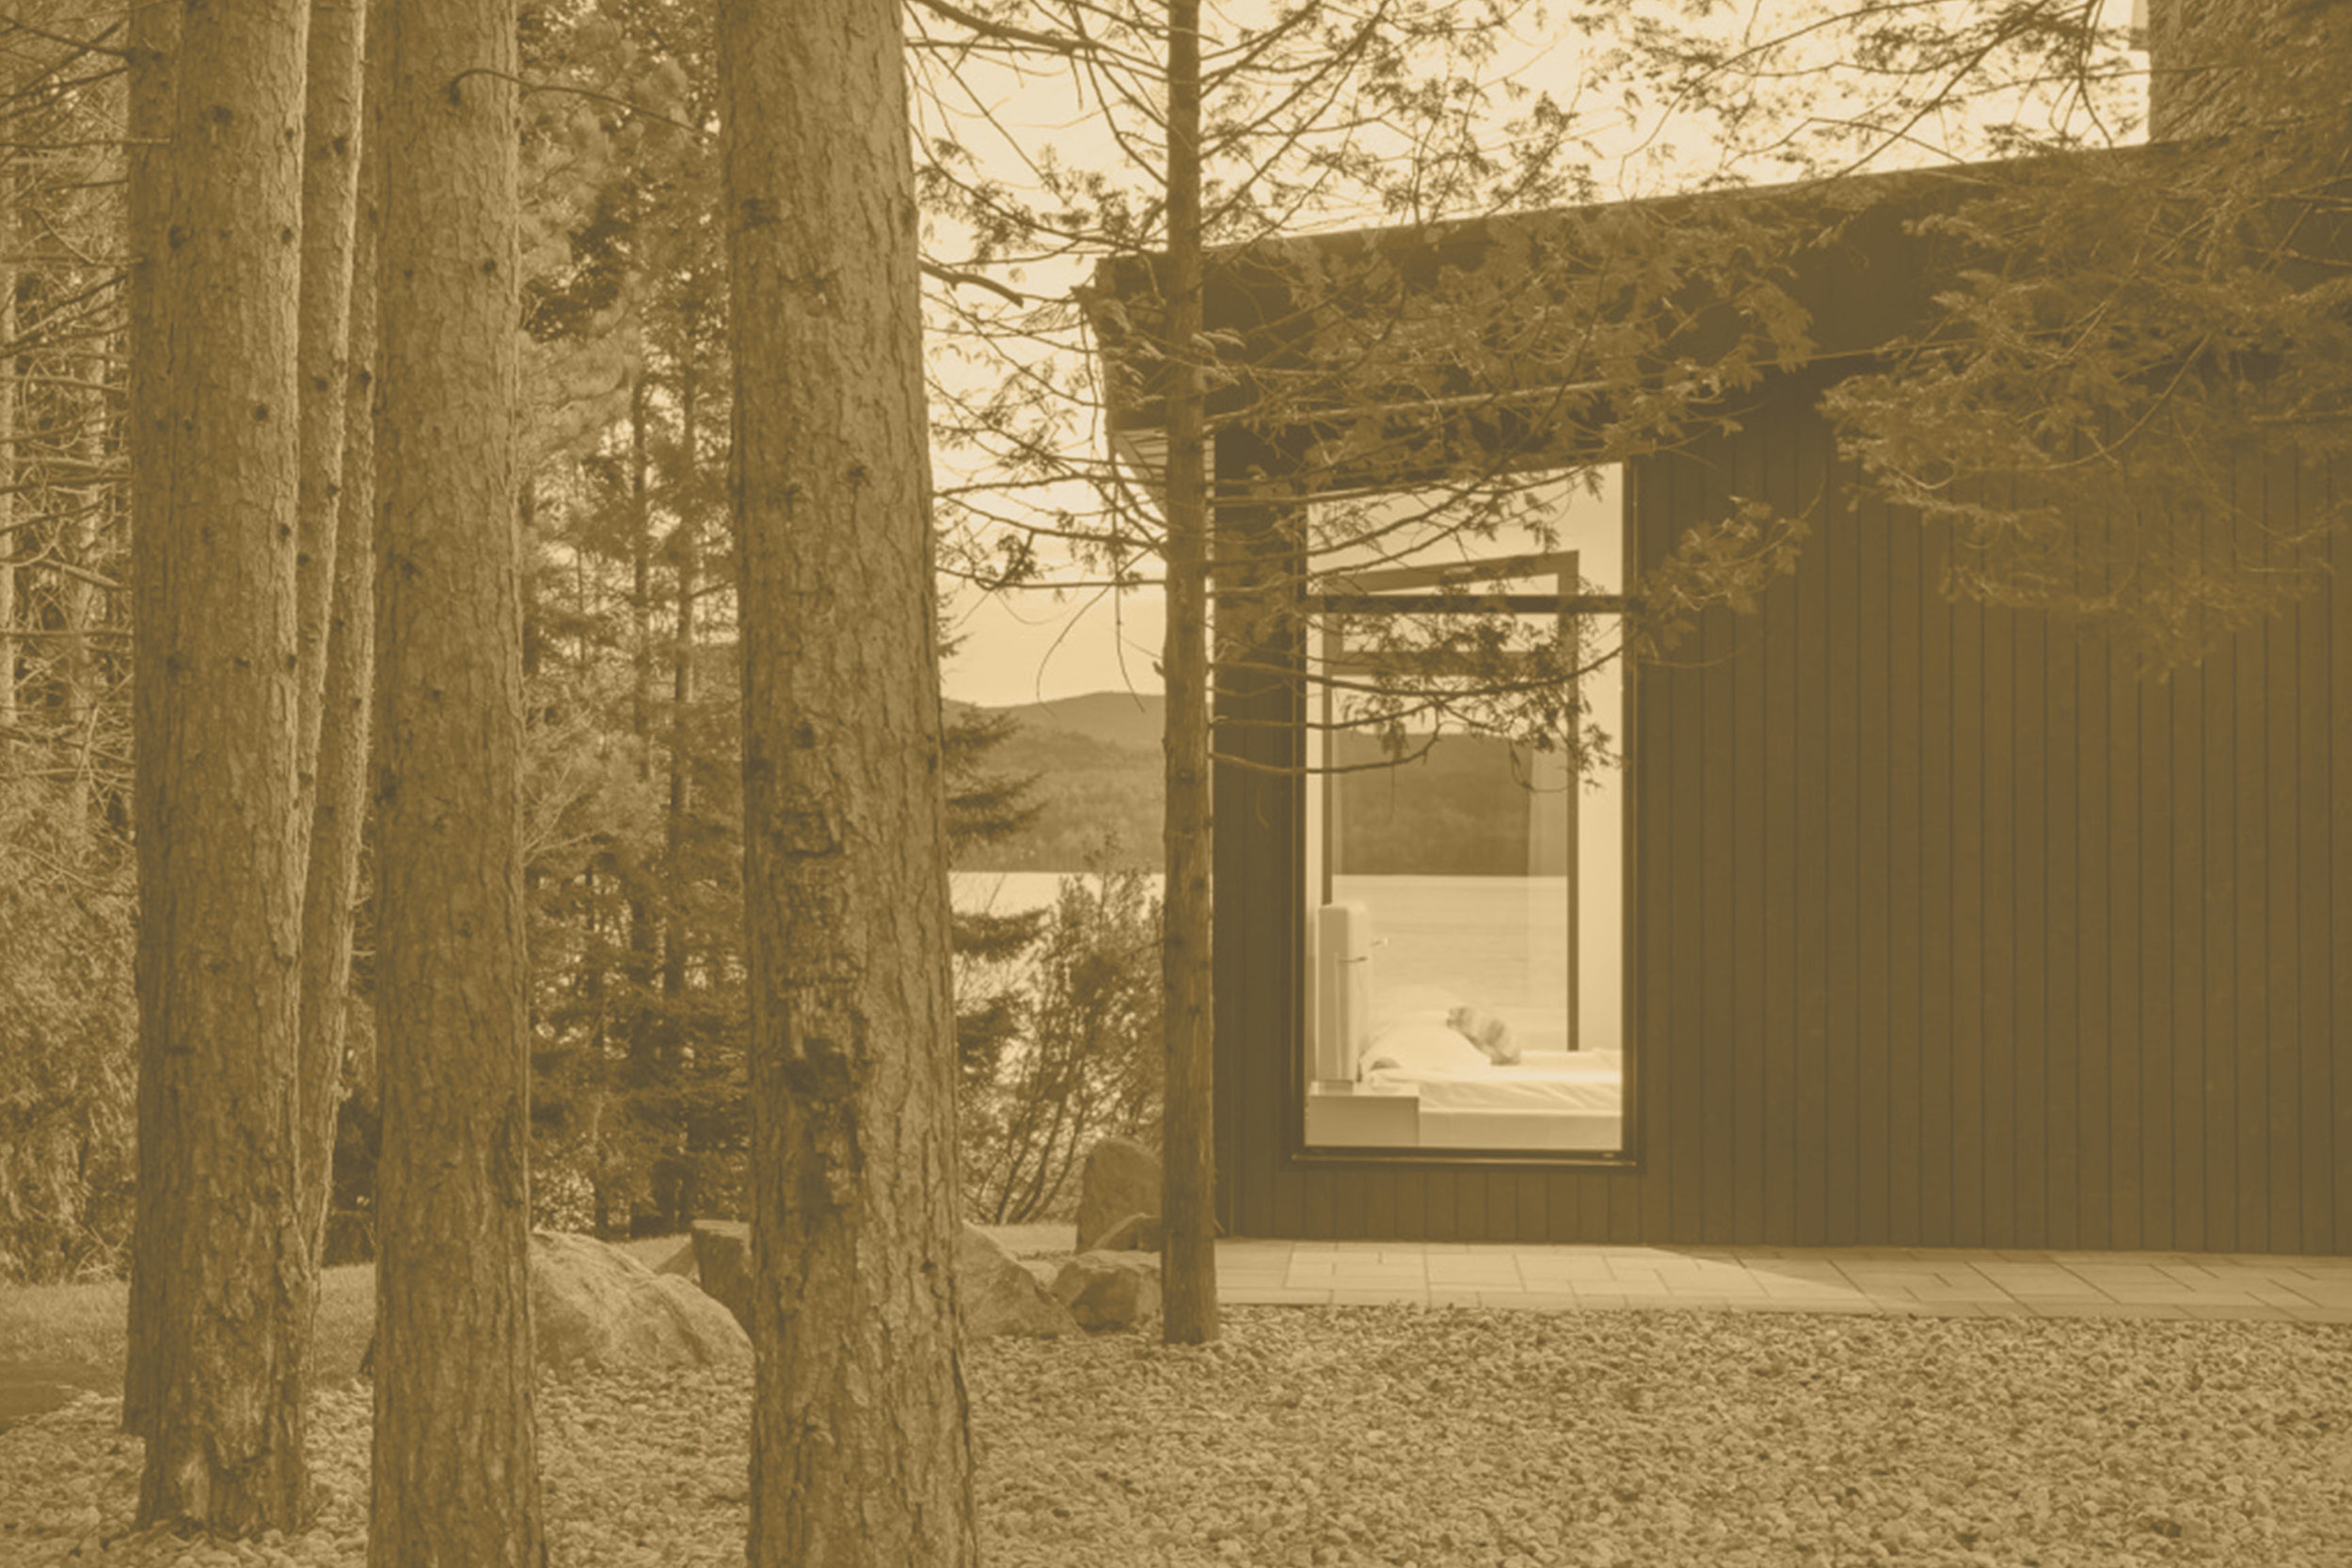 Let Nature In - Minimal, Eco-Friendly Design